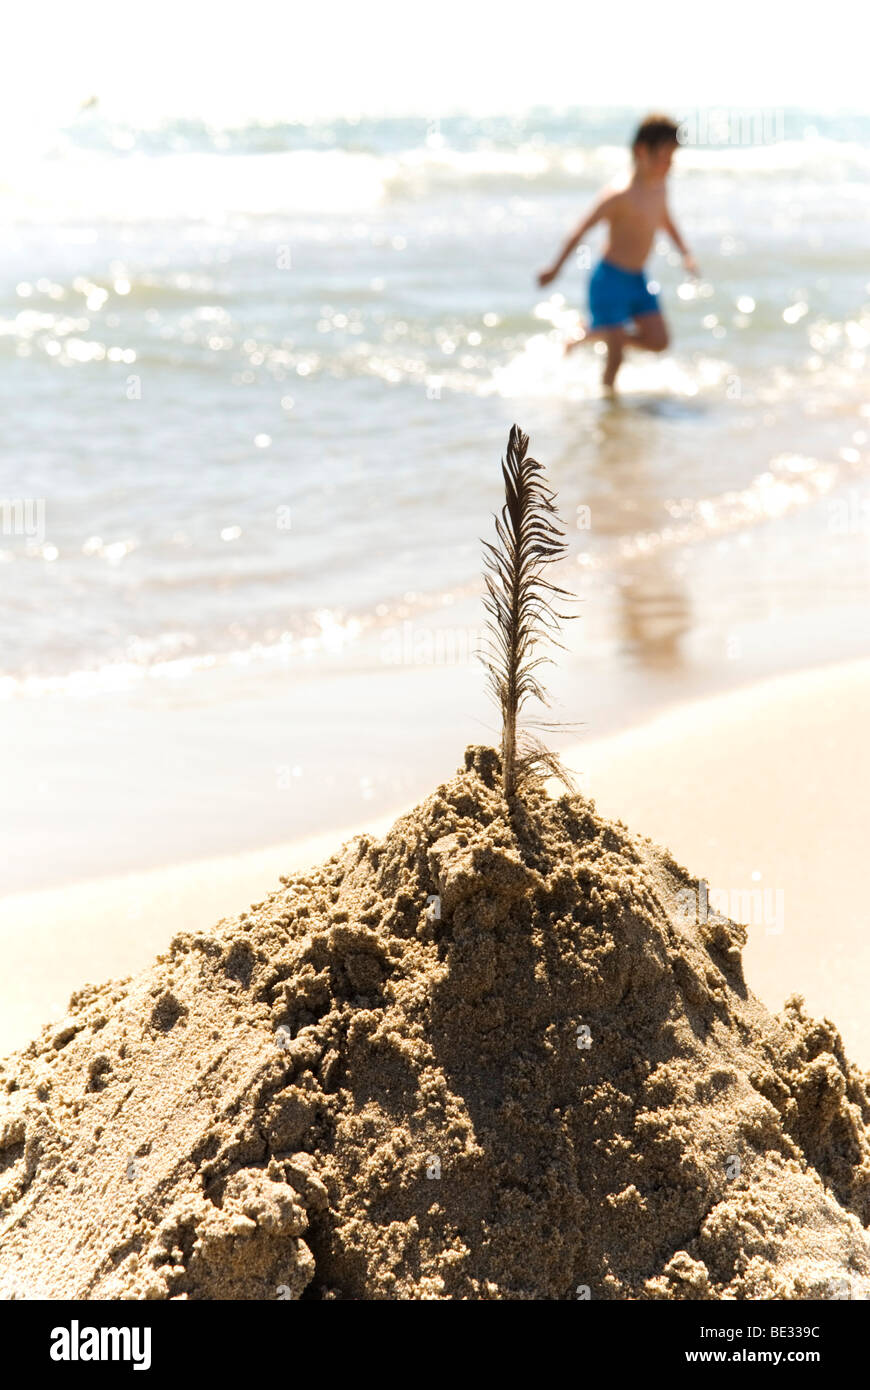 feather stuck in a pile of sand on beach with boy running in sea in background - Stock Image